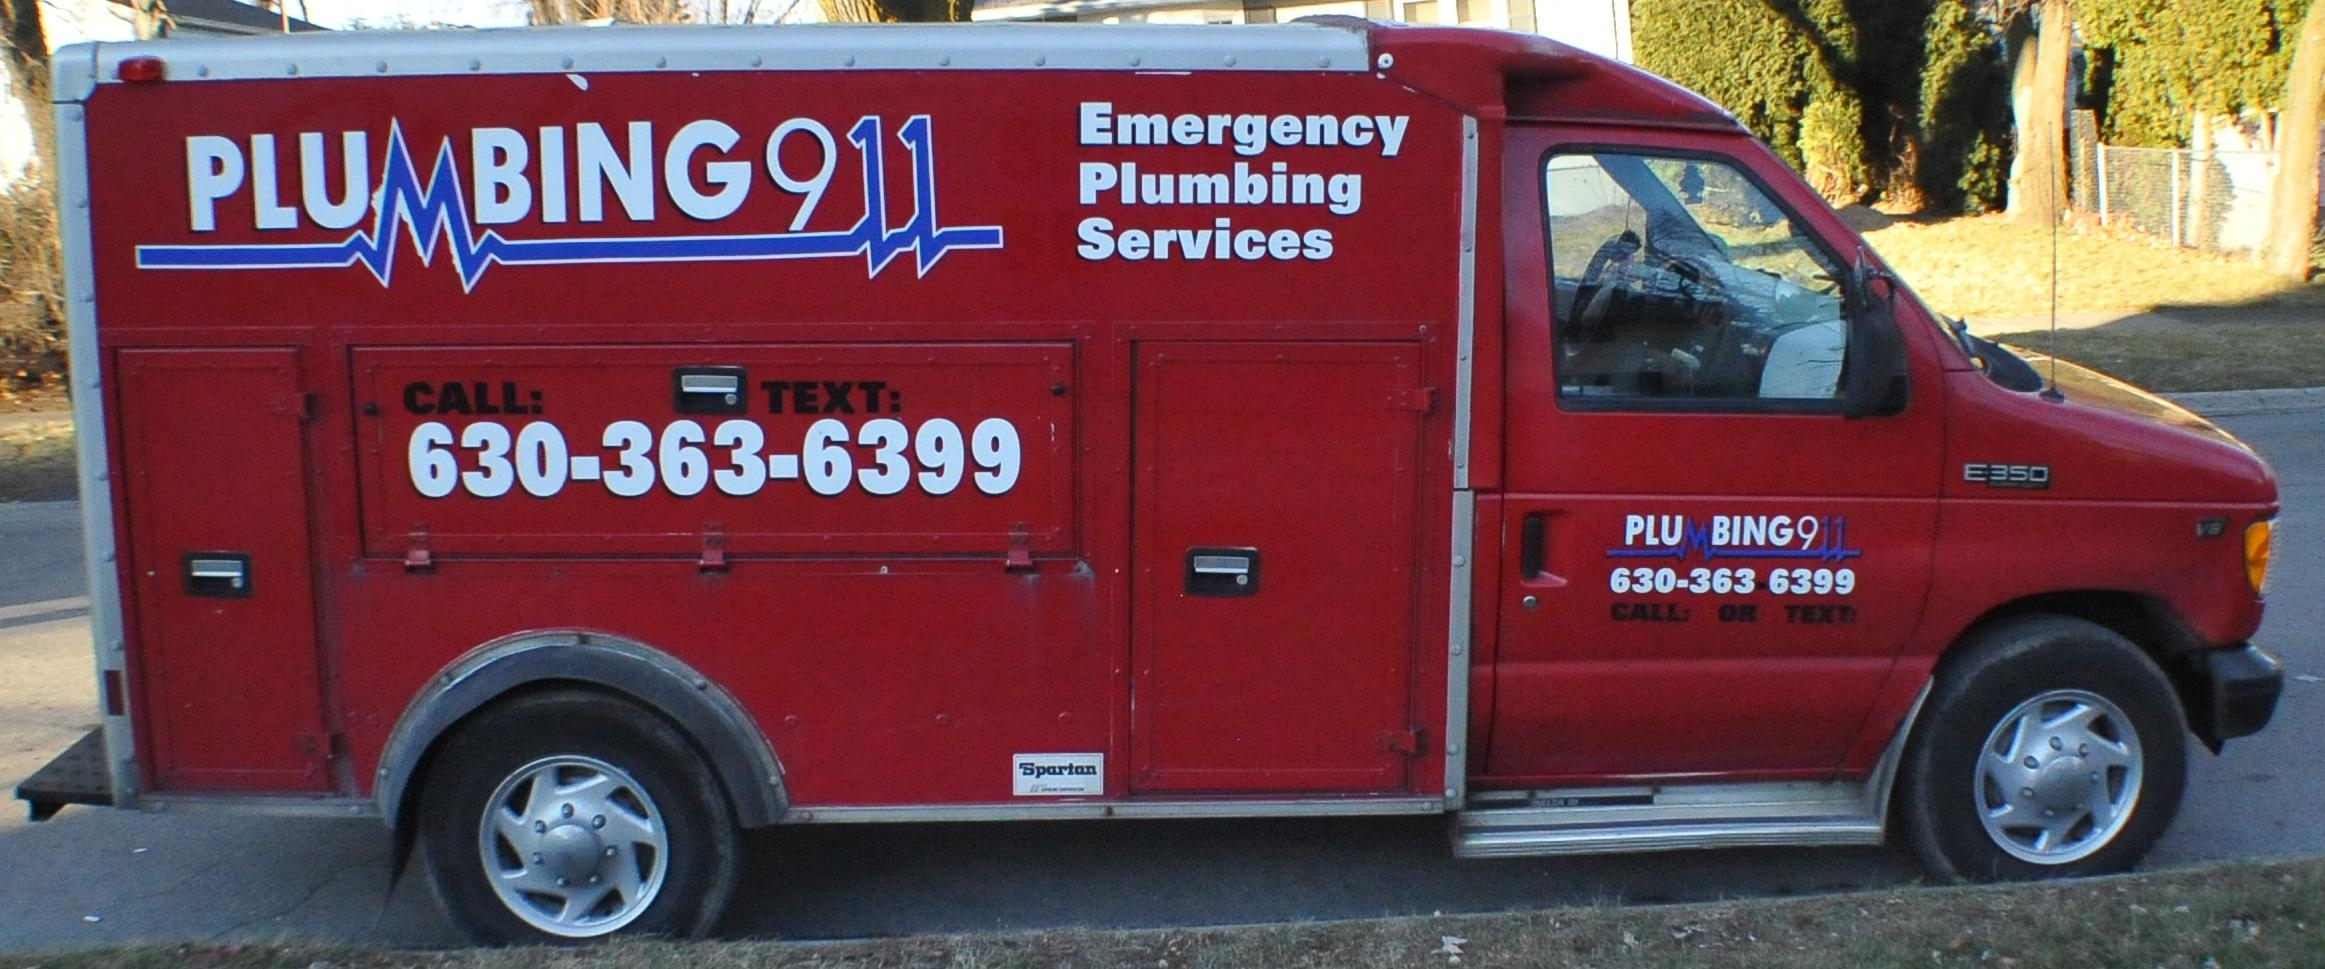 emergency plumbing plumber service frozen pipe Fix